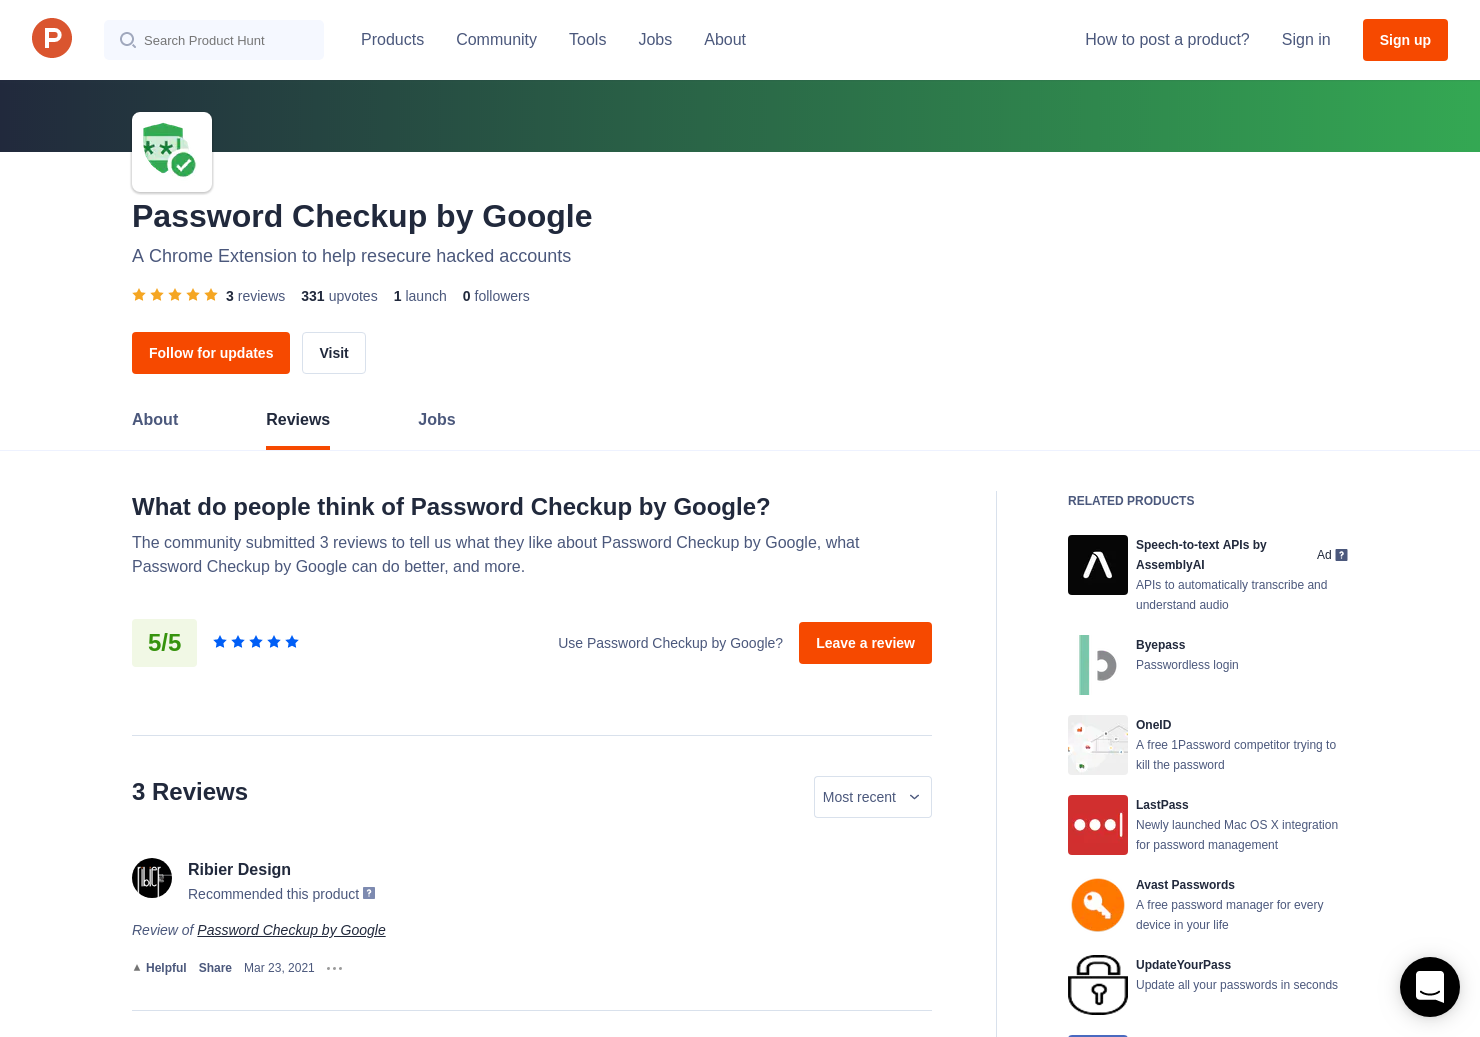 Amin Afshar's review of Password Checkup by Google   Product